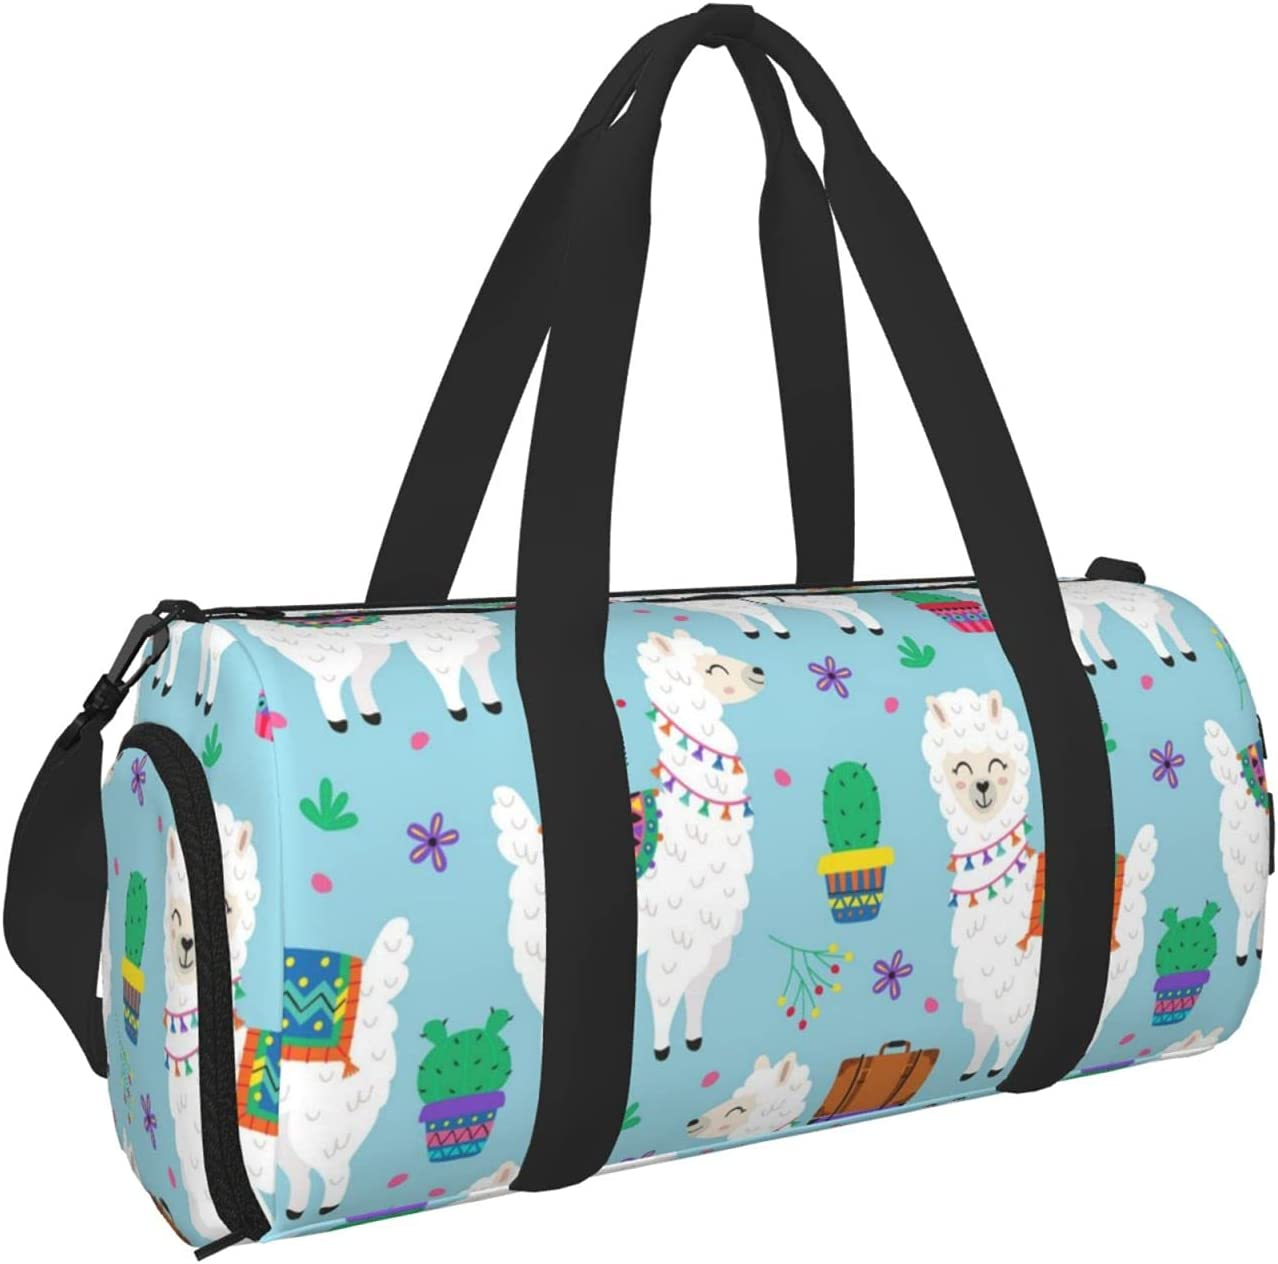 Kenaat Llama Sports Gym Bag With Ba Dry Duffel Separated Wet All Boston Mall items in the store